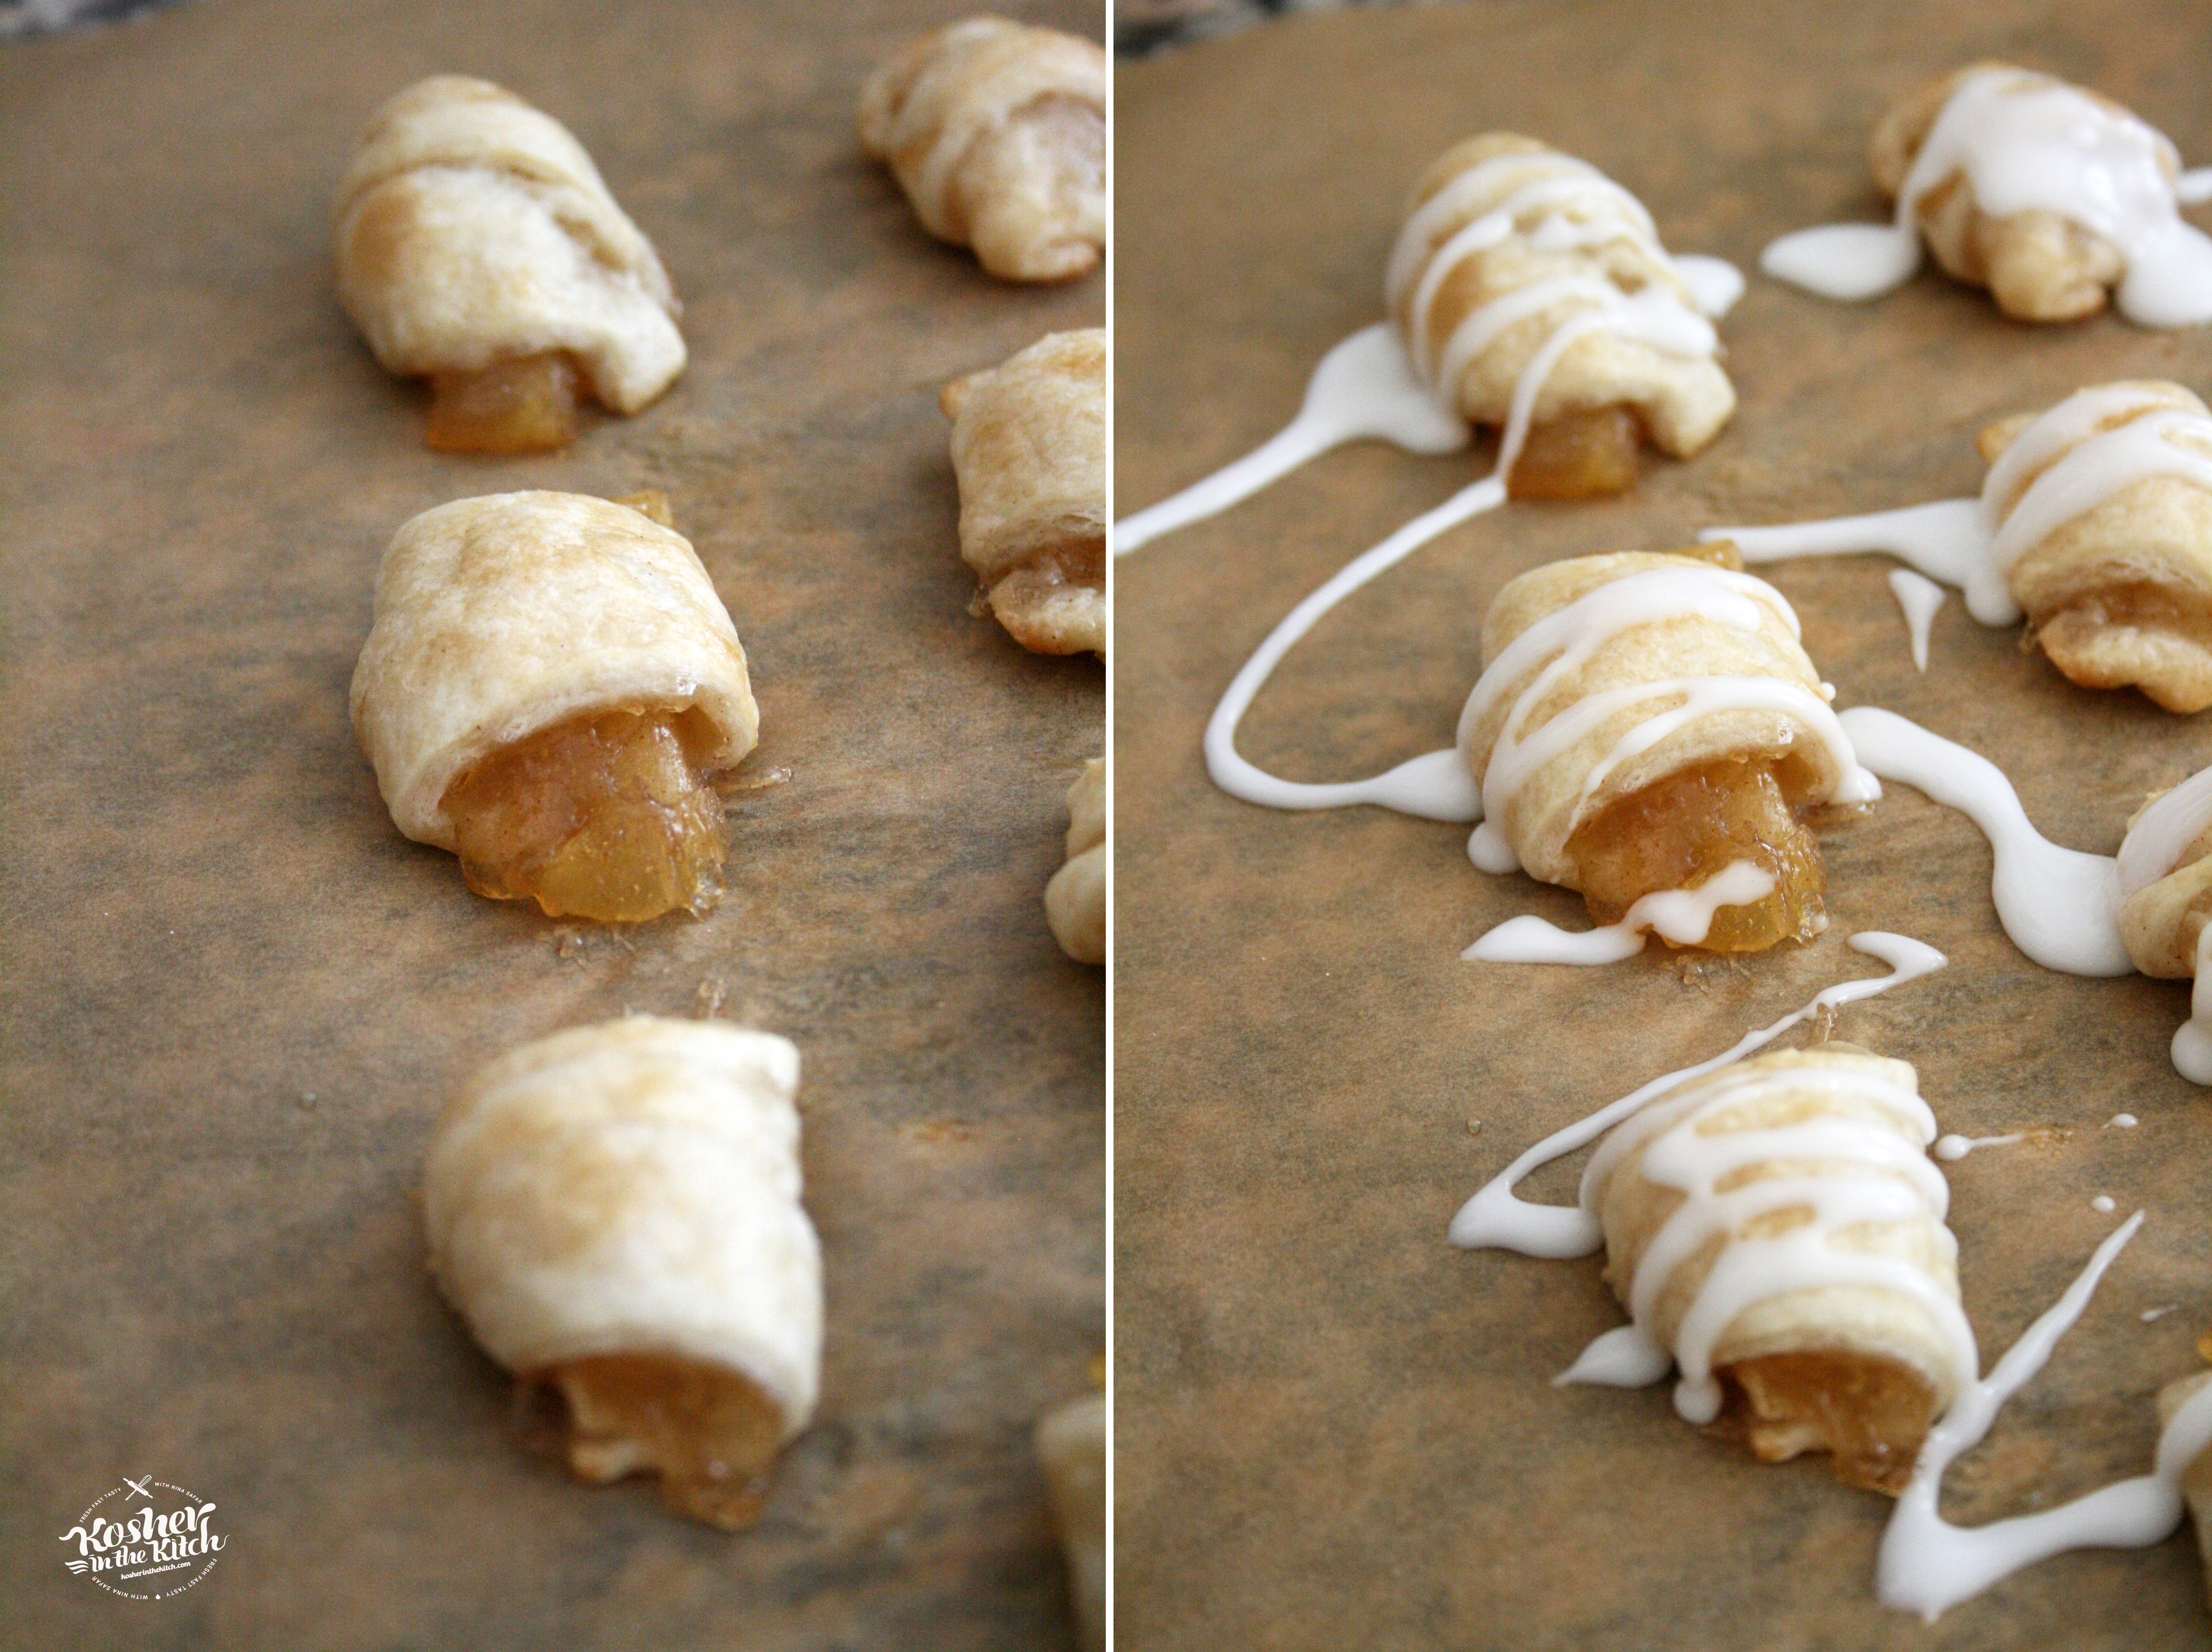 Allow rugelach to cool off before drizzling glaze on topa